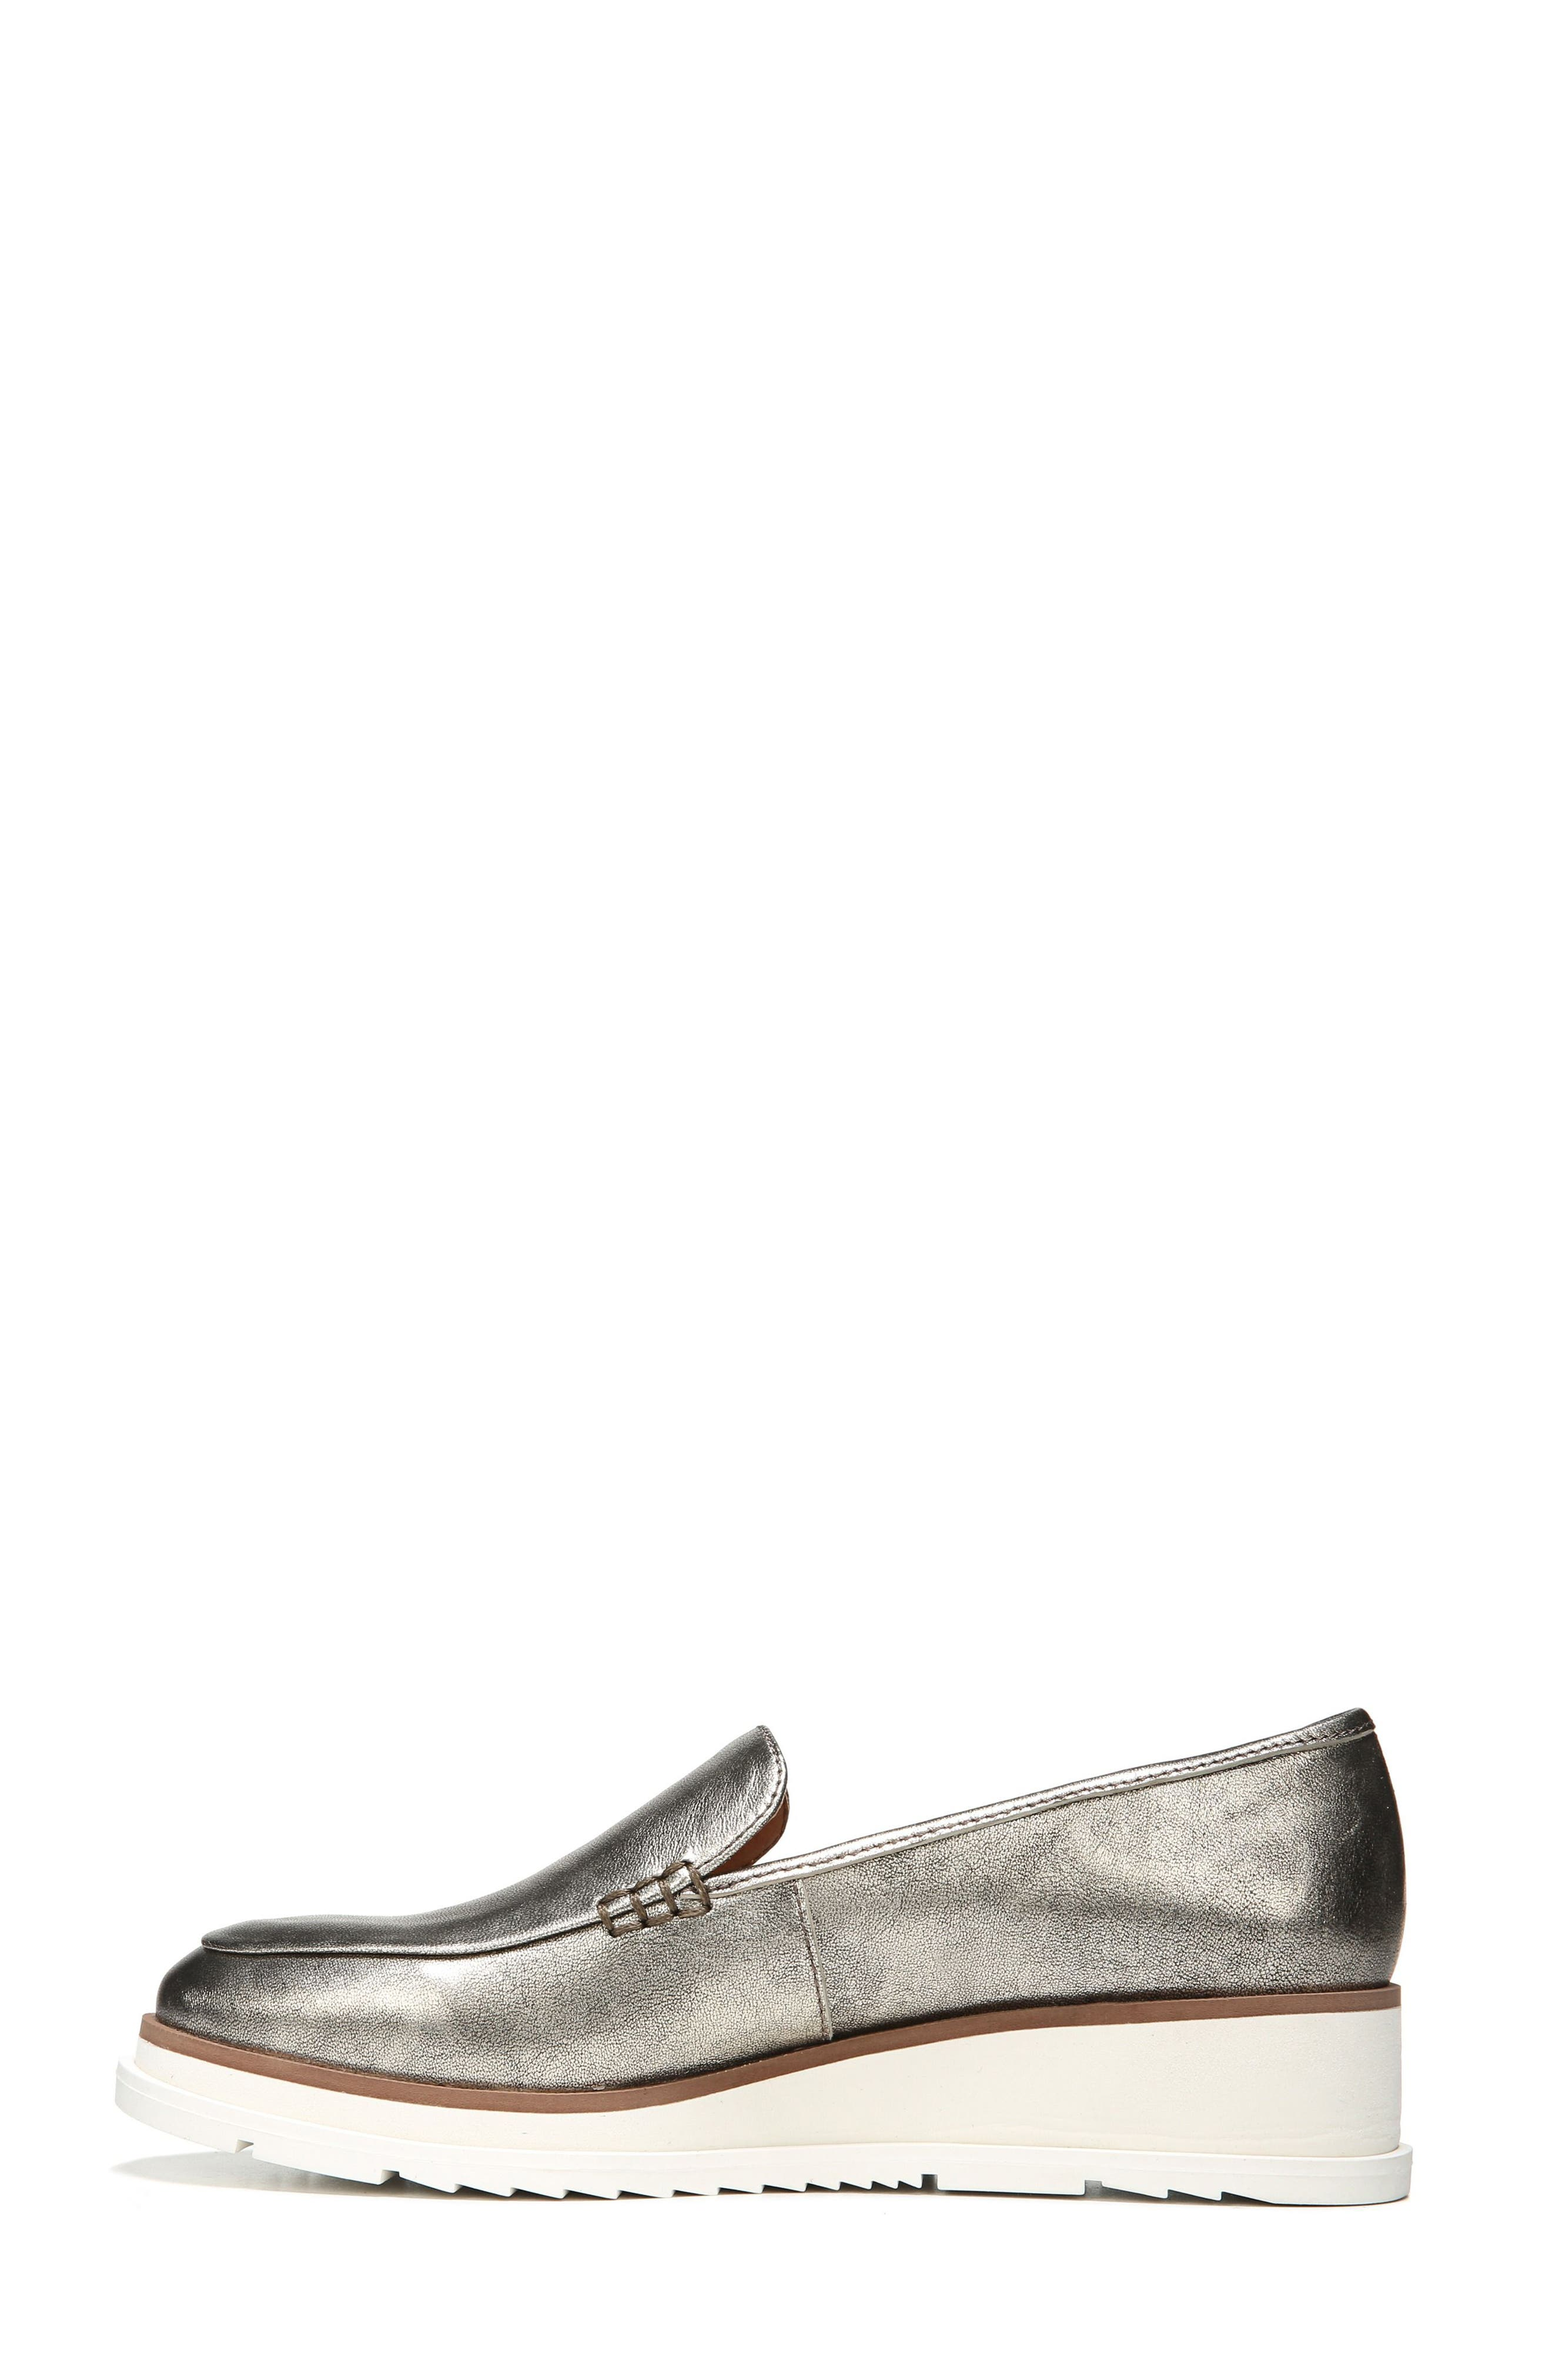 Ayers Loafer Flat,                             Alternate thumbnail 20, color,